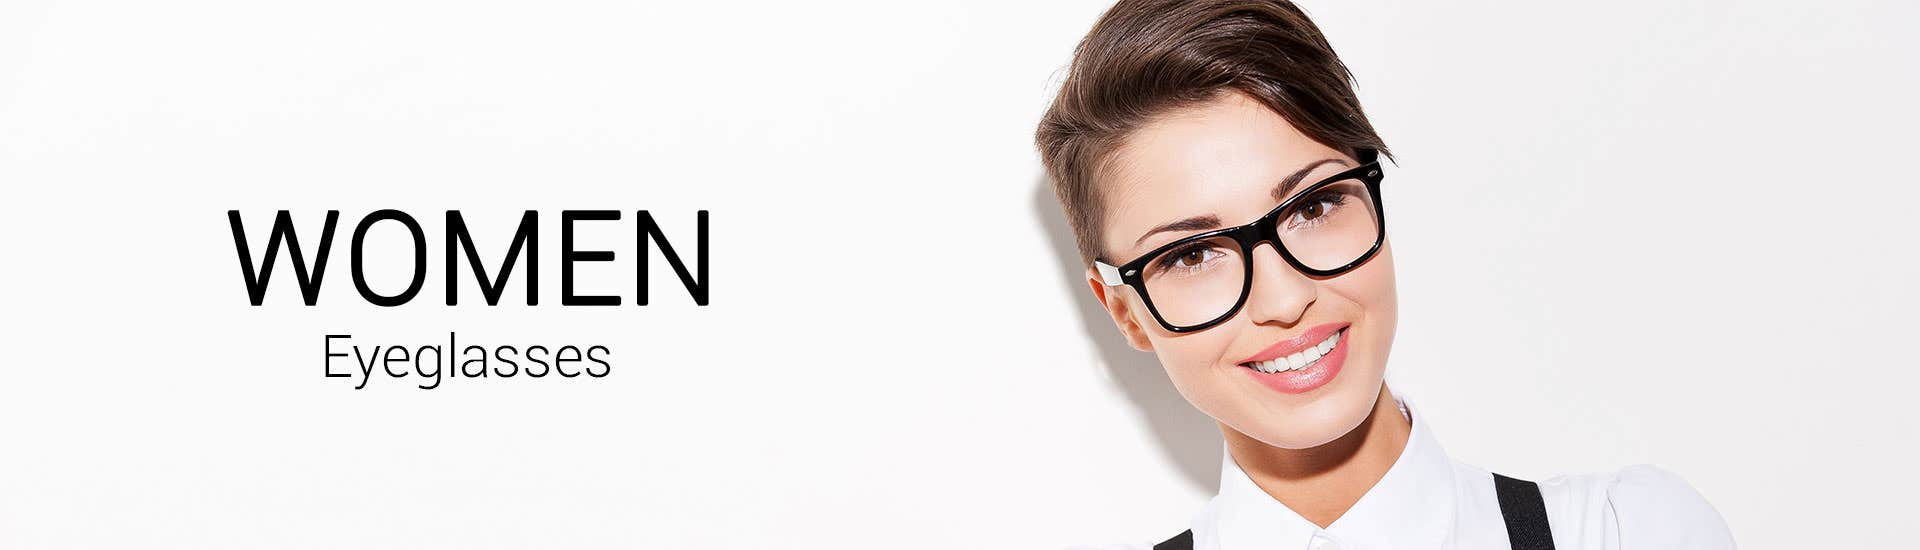 eyeglasses for women  Women - Prescription Eyeglasses